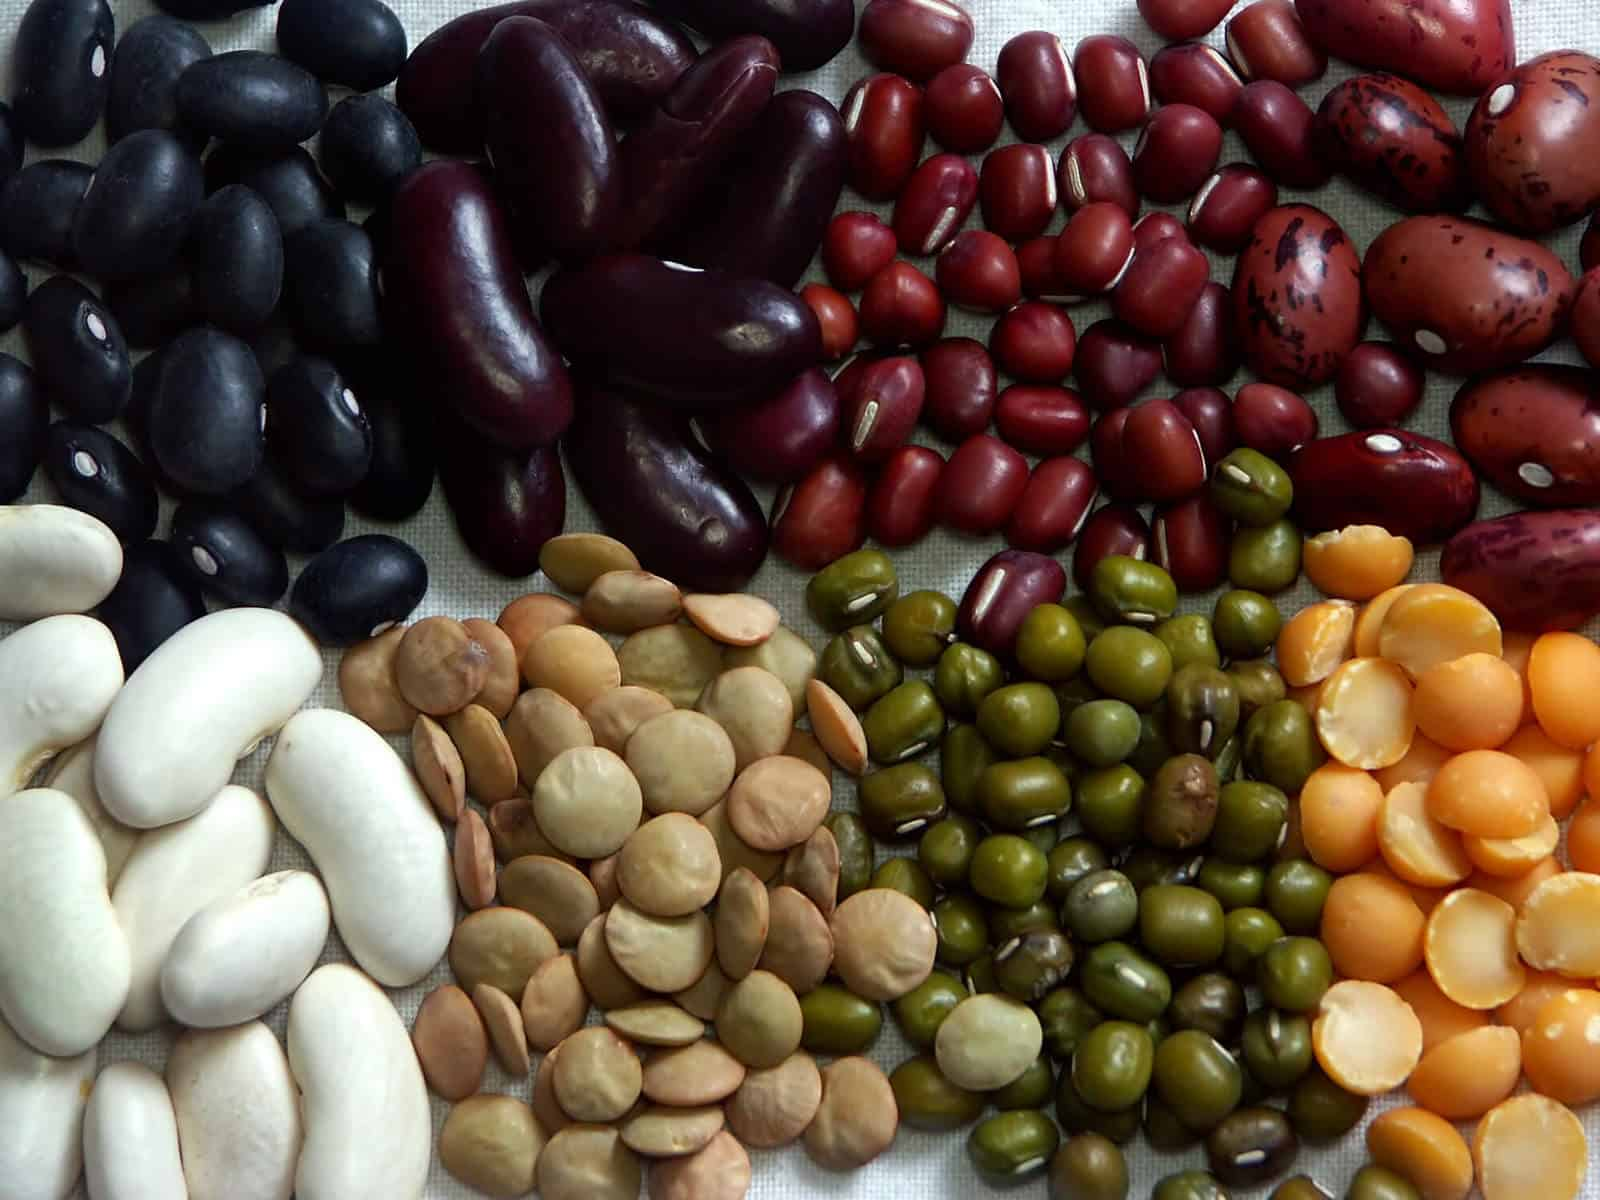 Eight kinds of beans/legumes